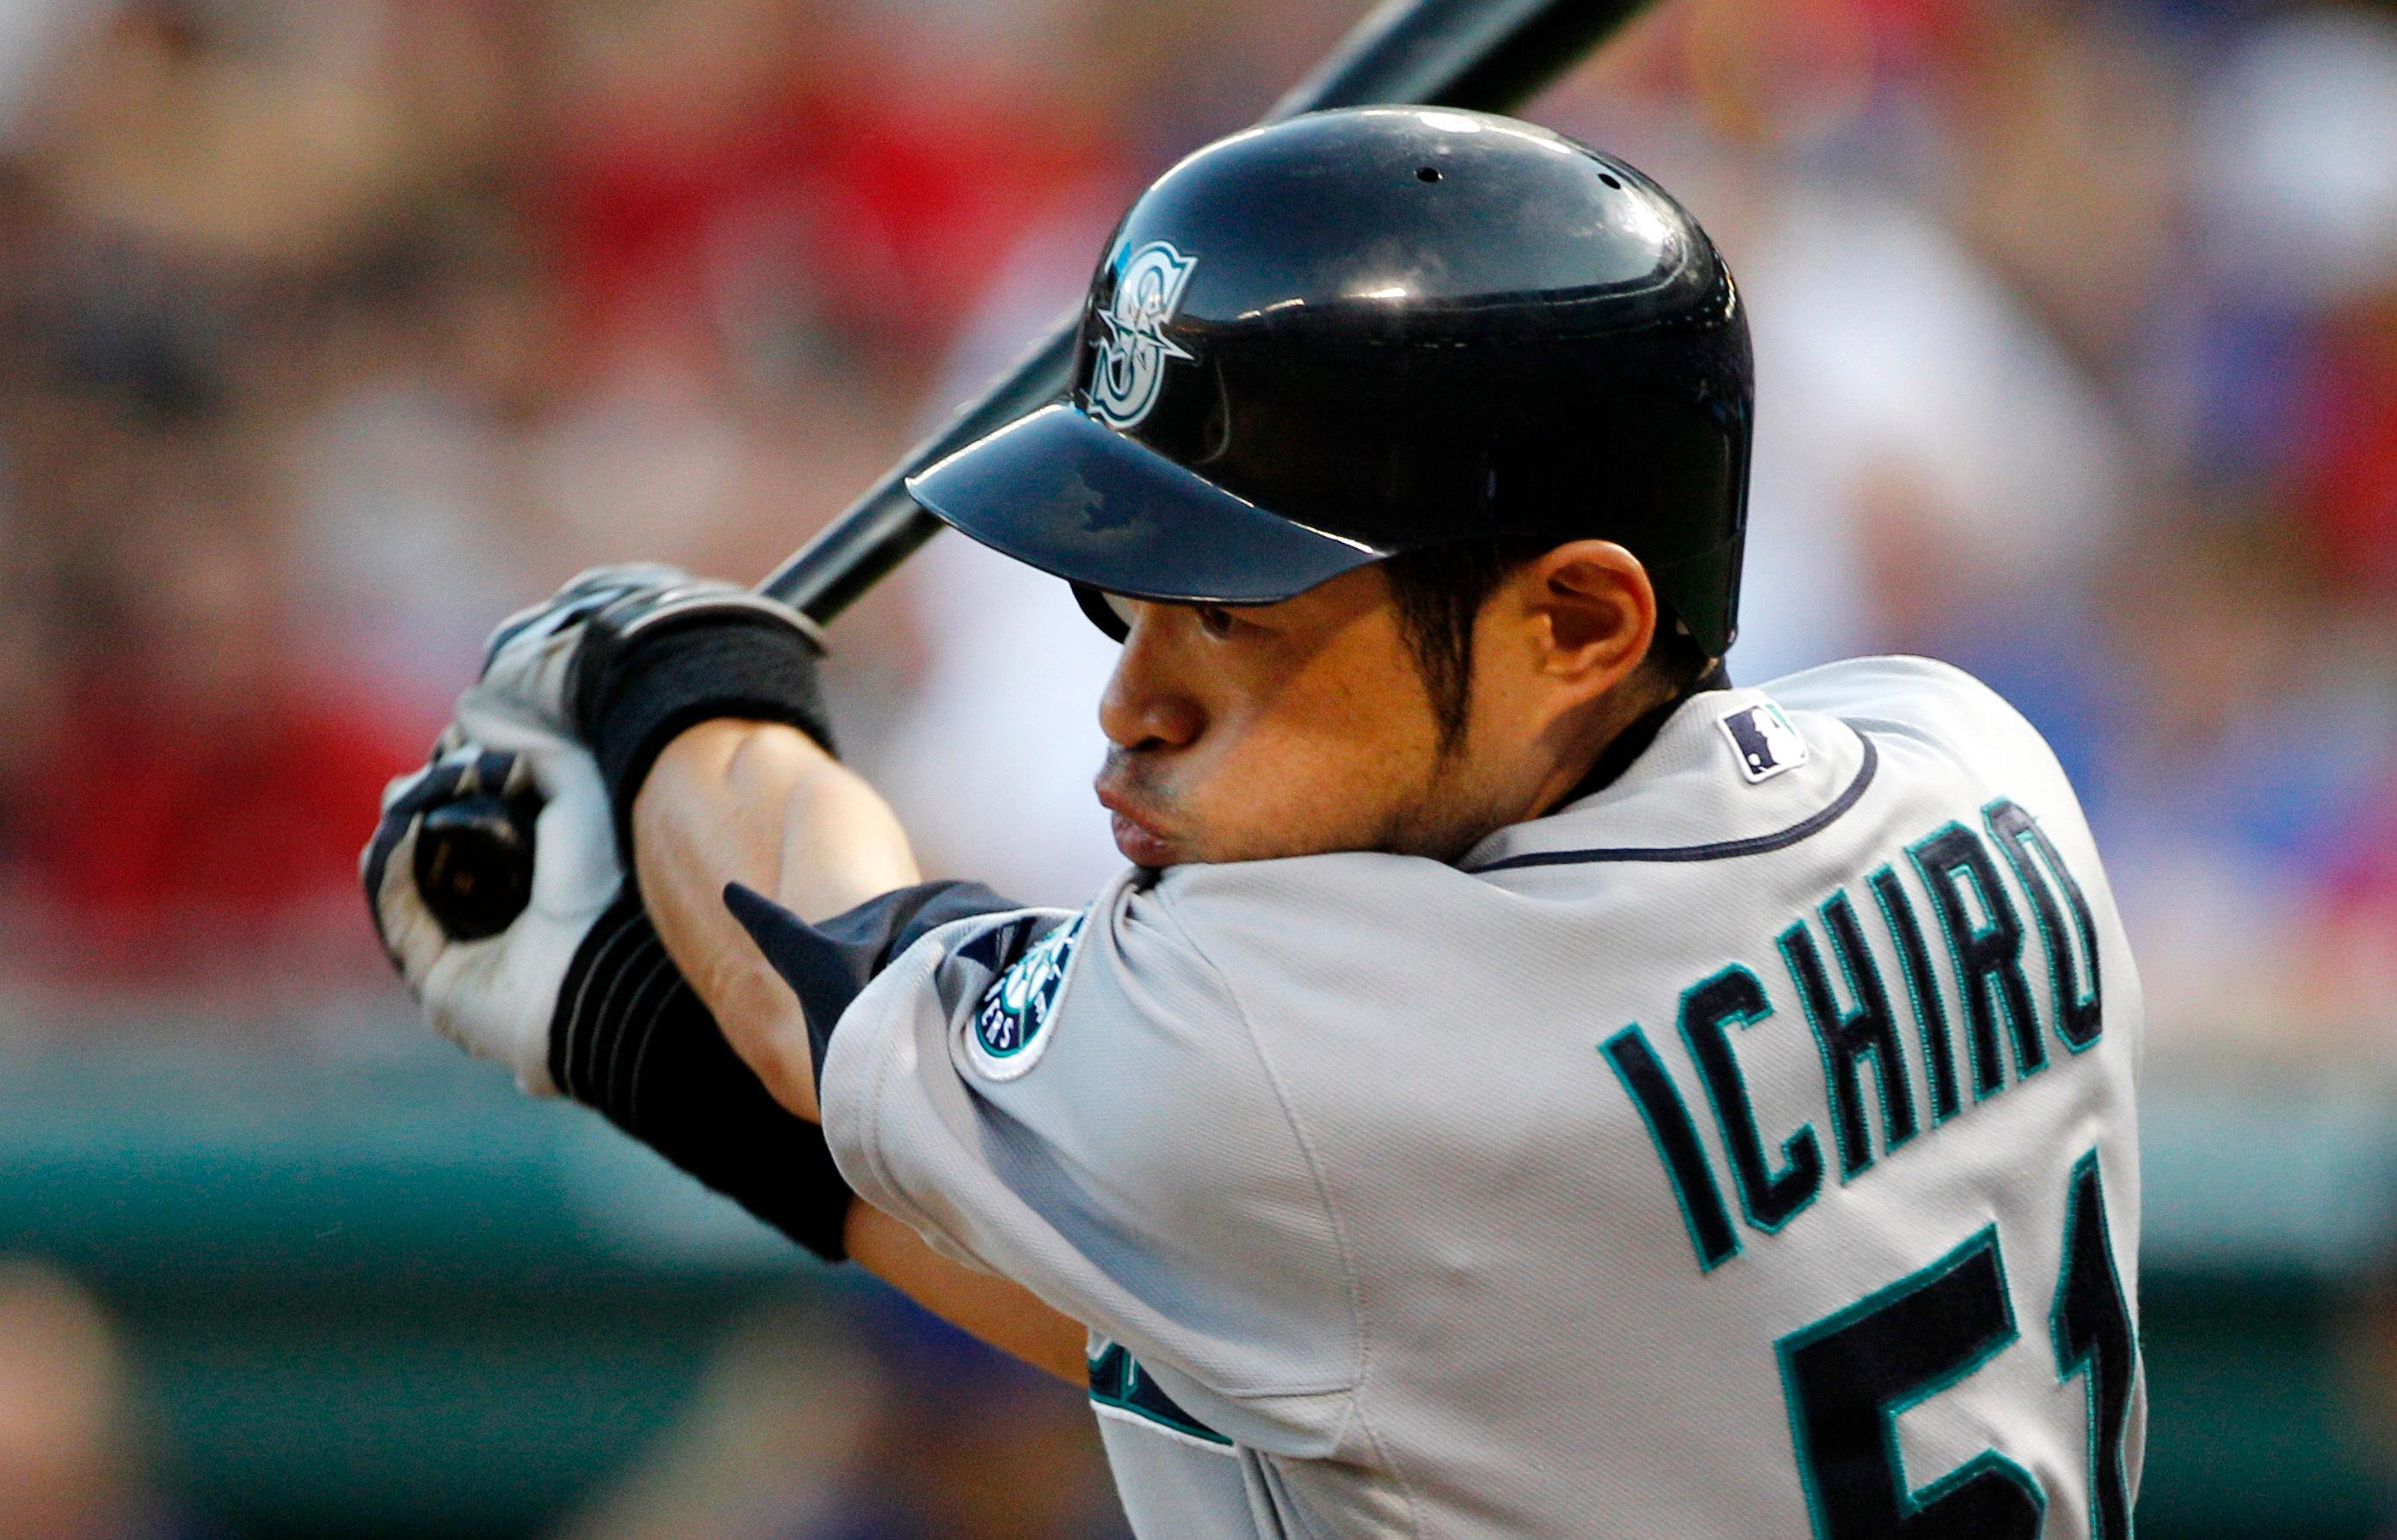 FILE - In this May 29, 2012, file photo, Seattle Mariners' Ichiro Suzuki bats against the Texas Rangers during a baseball game in Arlington, Texas. The Mariners finalized a one-year deal with 44-year-old Japanese star on Wednesday, March 7, 2018, after several outfielders got hurt. (AP Photo/Tony Gutierrez, File)